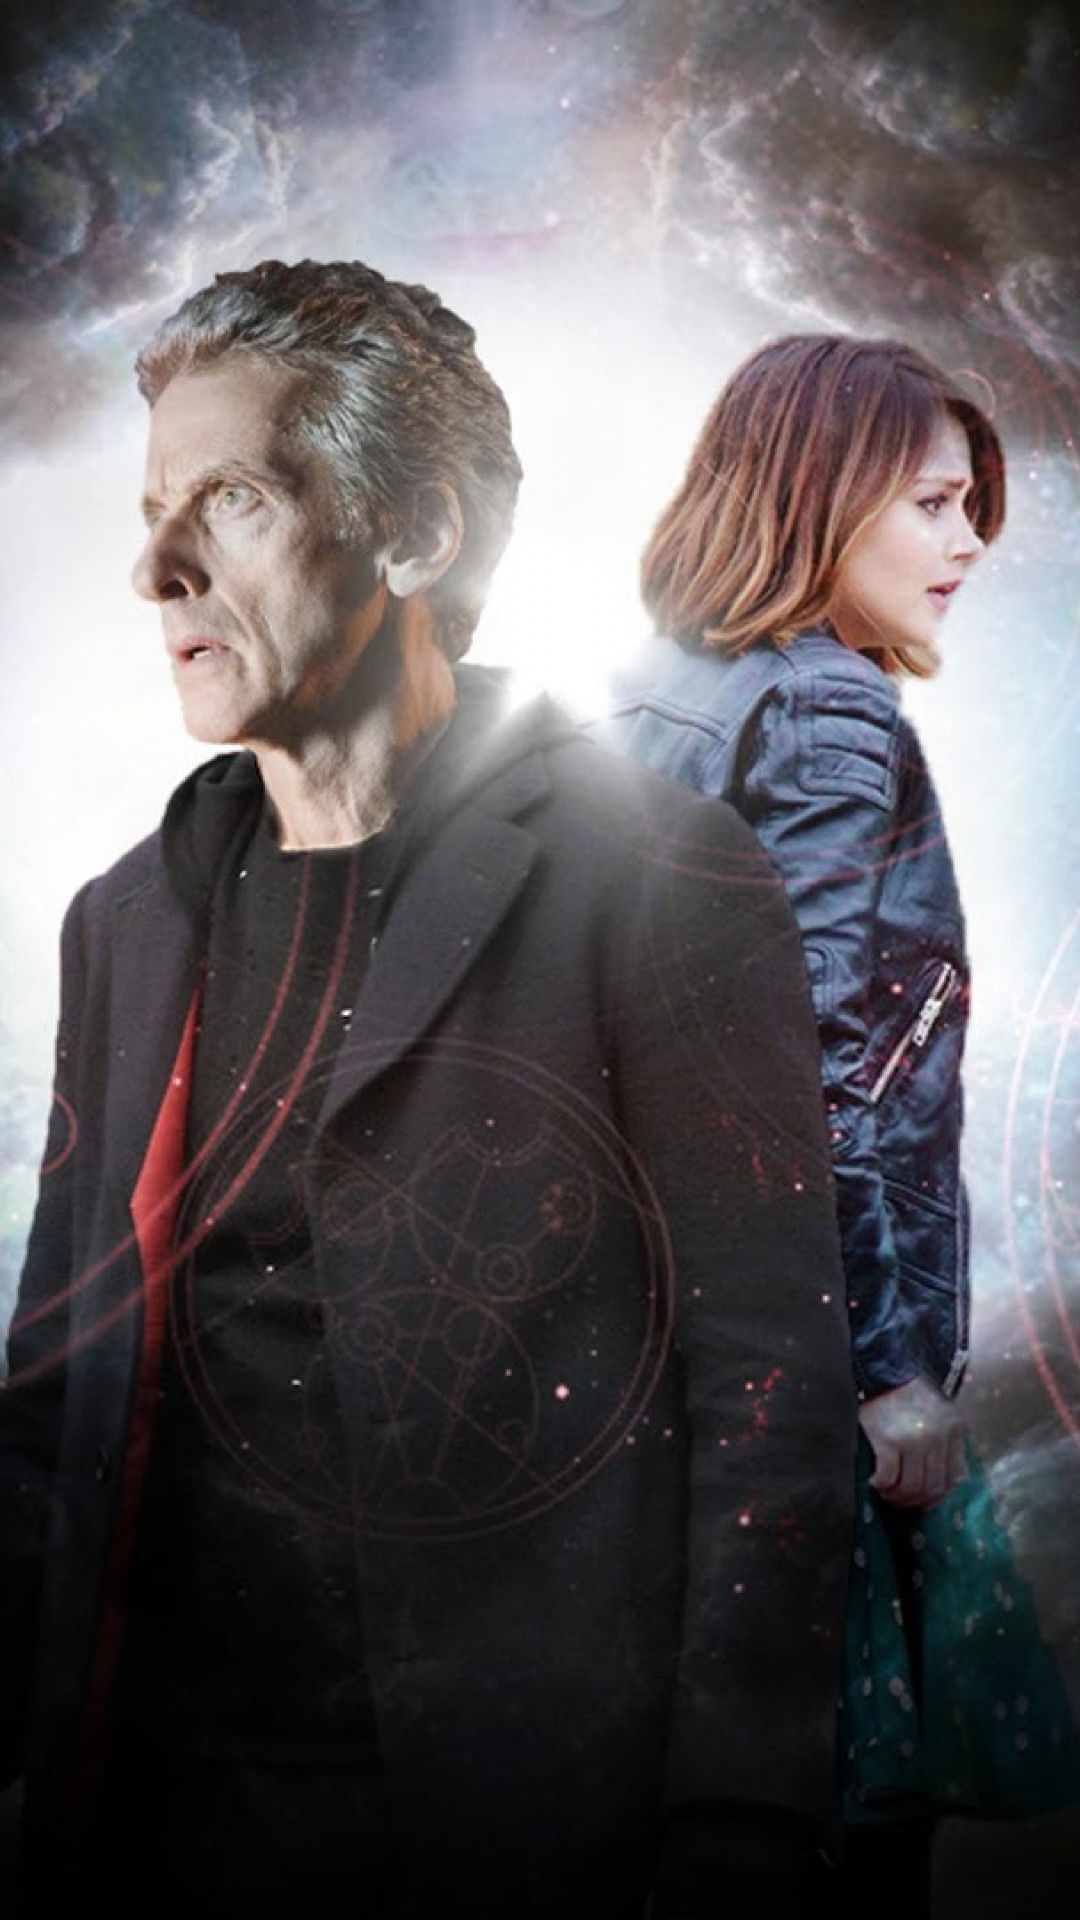 Doctor Who Wallpapers are for those who are looking for